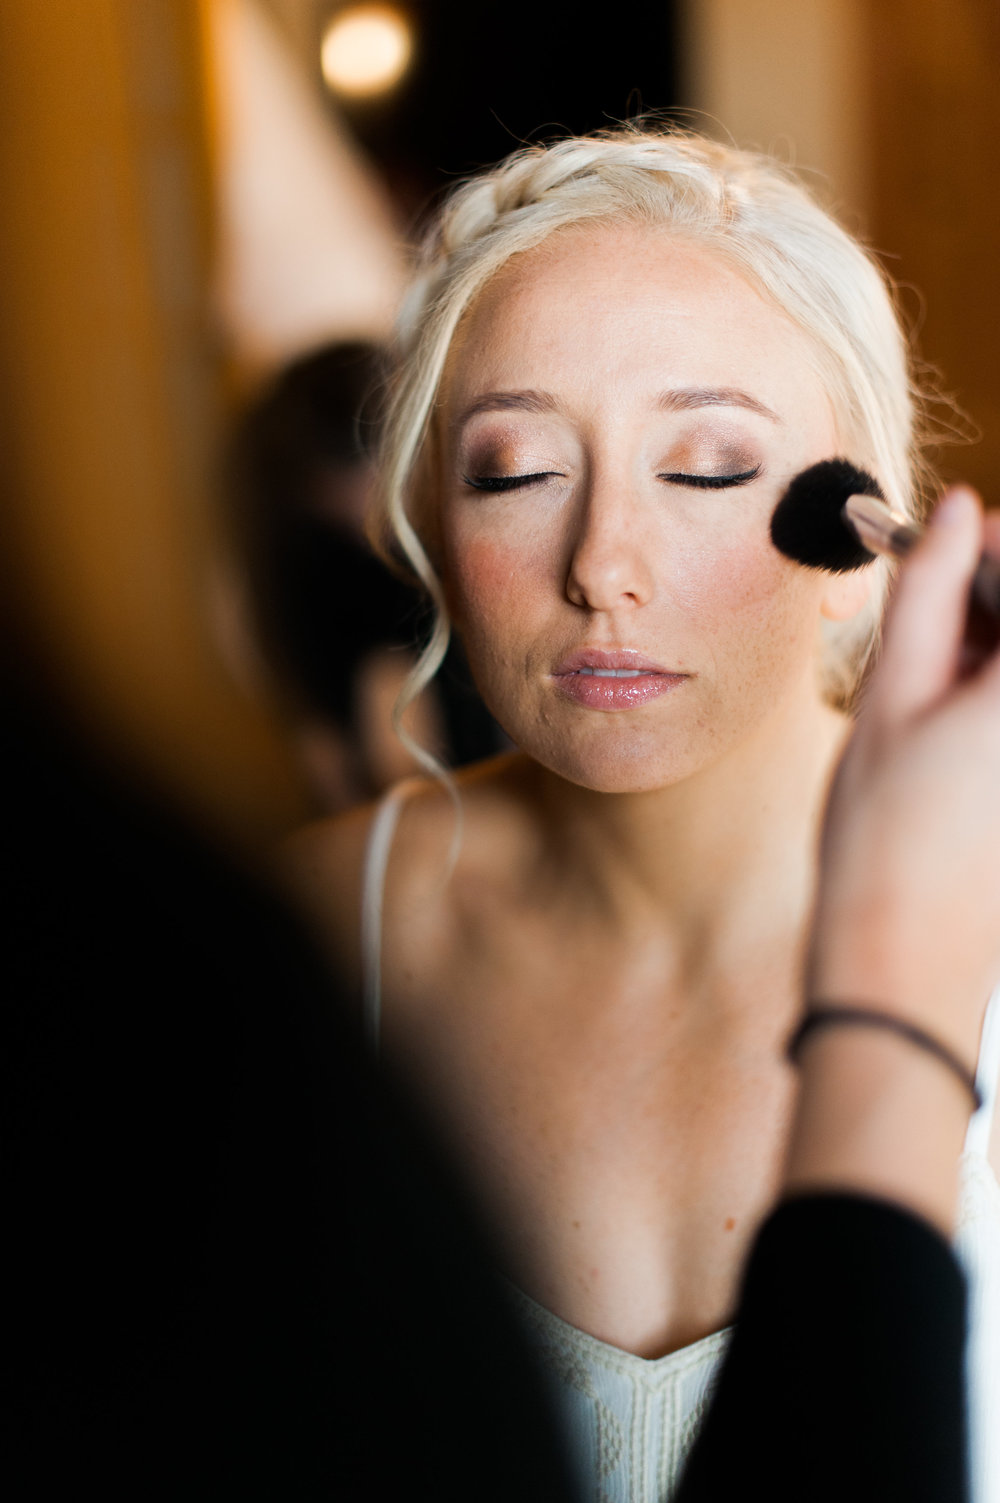 Bridal makeup by Kristy's Artistry Design Team